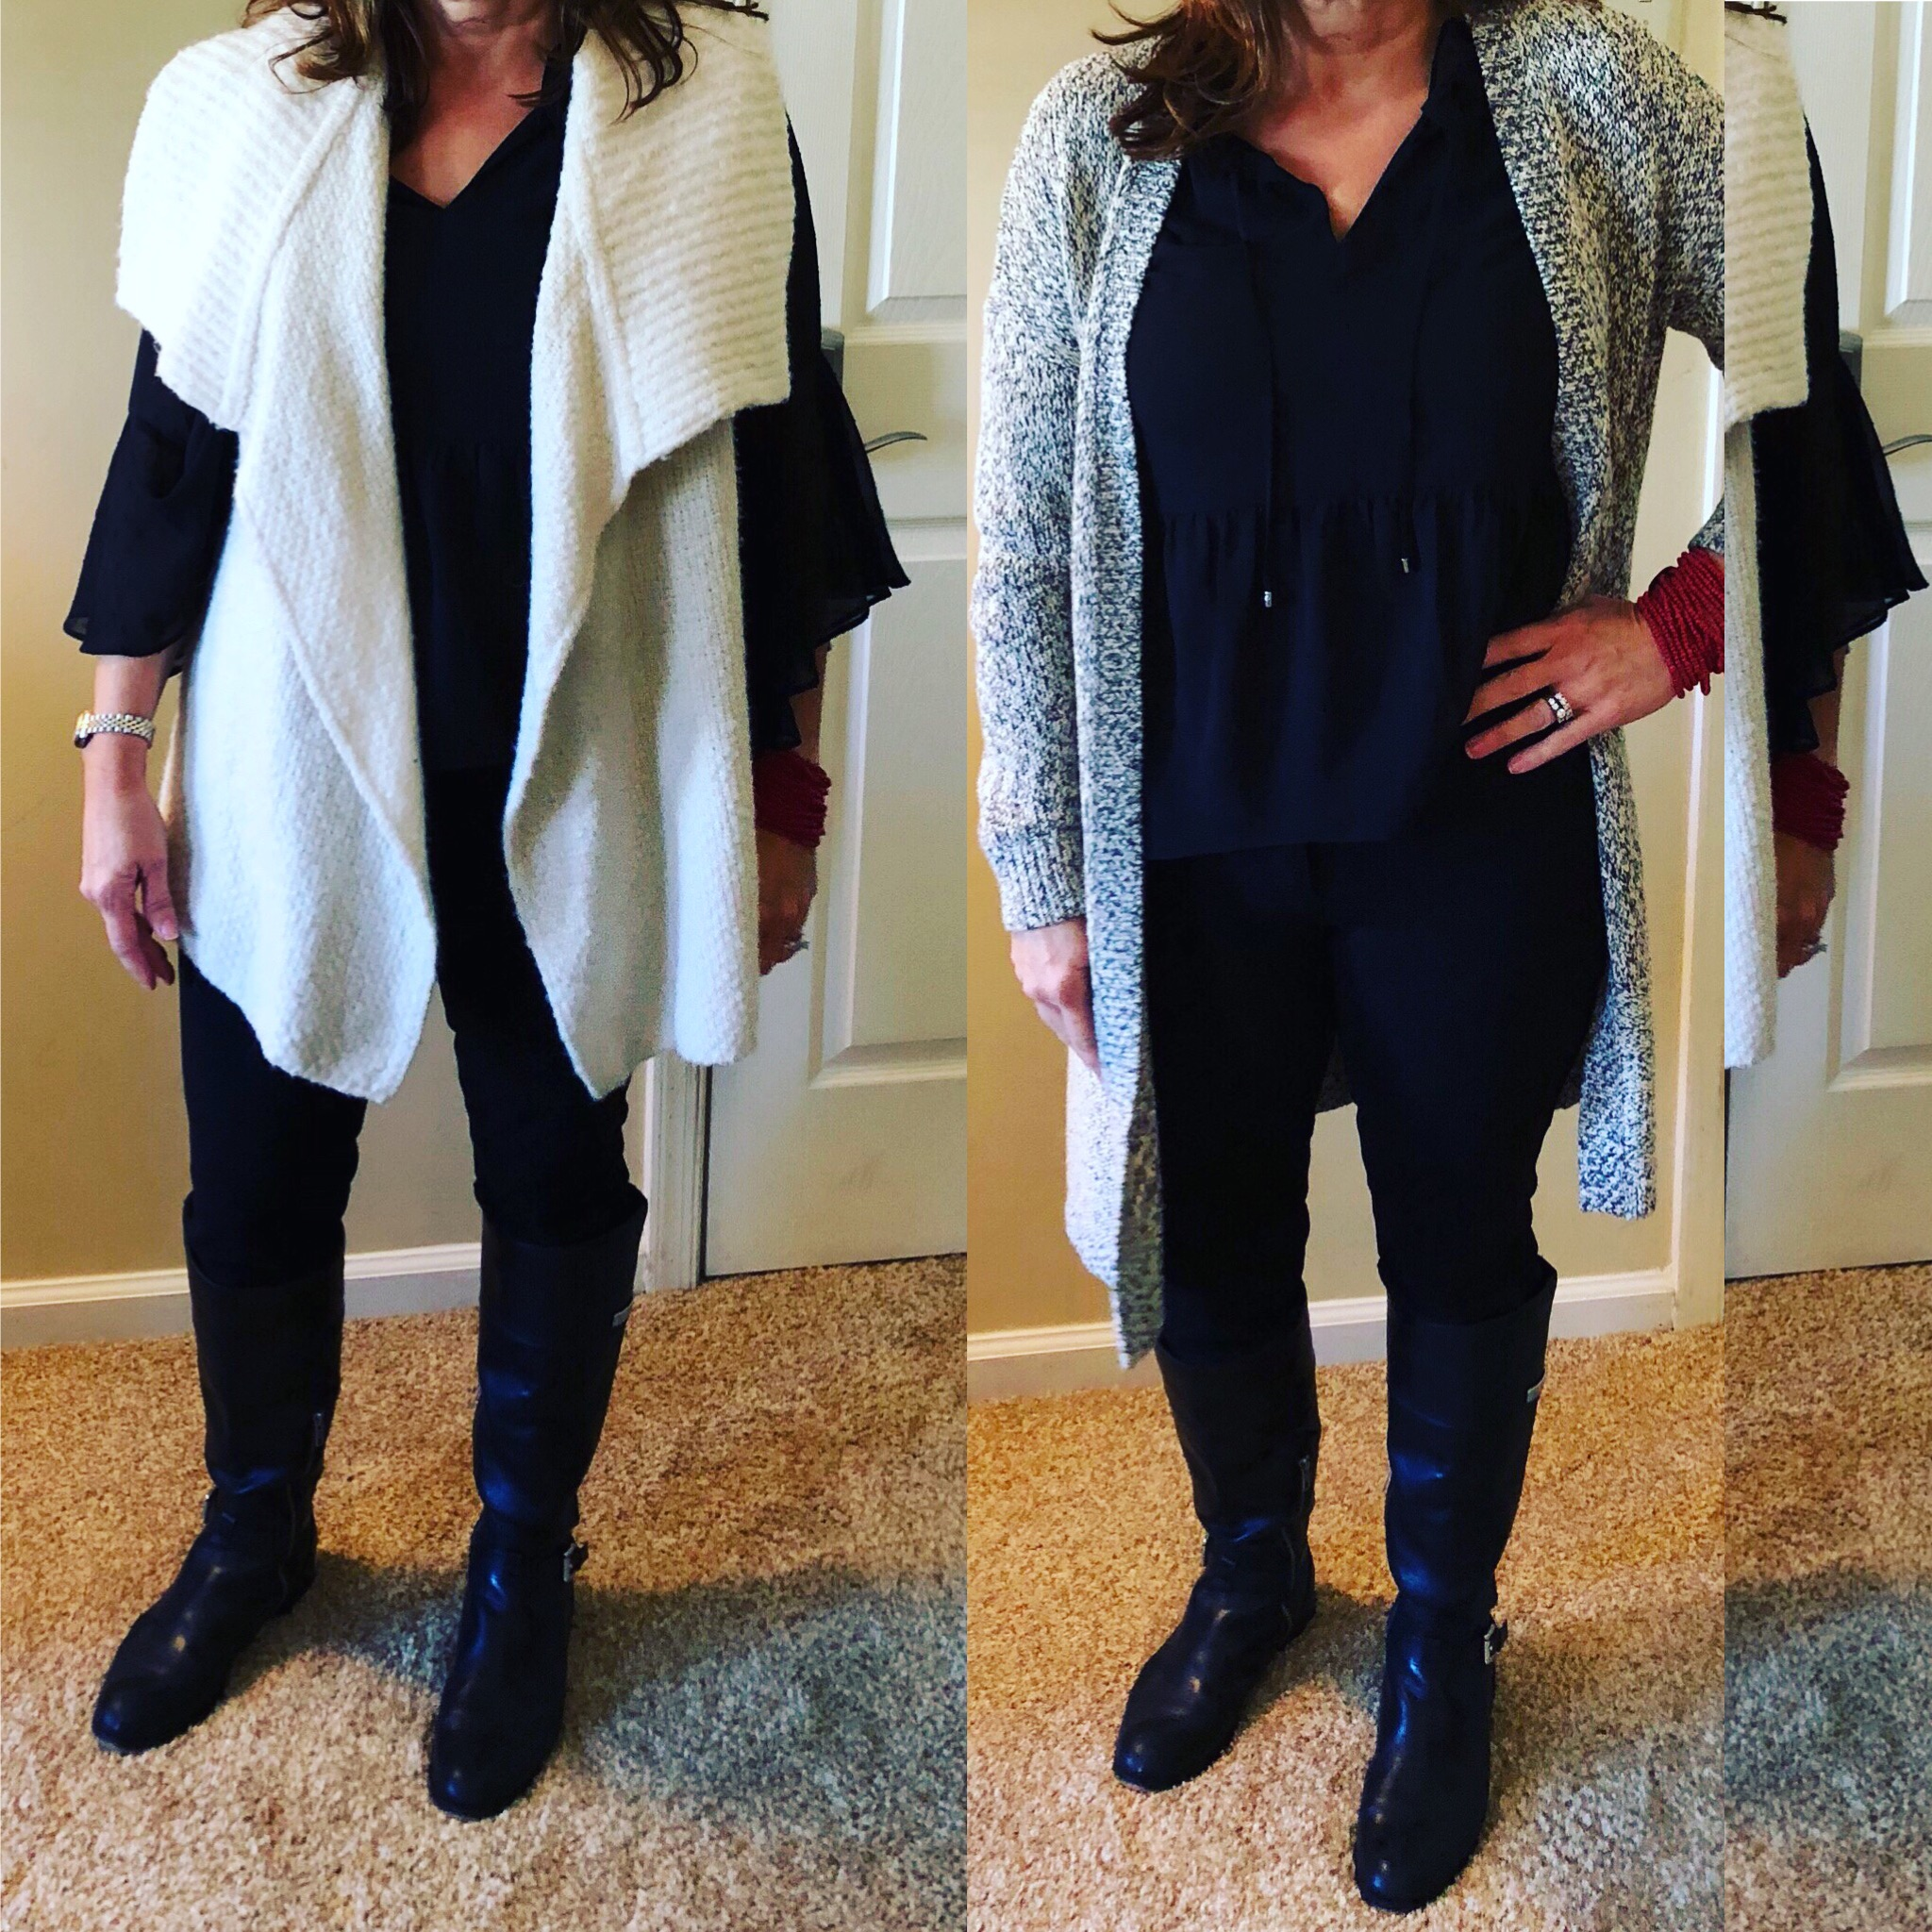 """She is 5'4"""", she has a medium sized frame. The photo on the left shows a long, bulkier sweater that works, BUT the sweater over powers her body. The proportion is not correct. The photo on the right shows a longer sweater, not as bulky and gives the appearance of her being taller."""